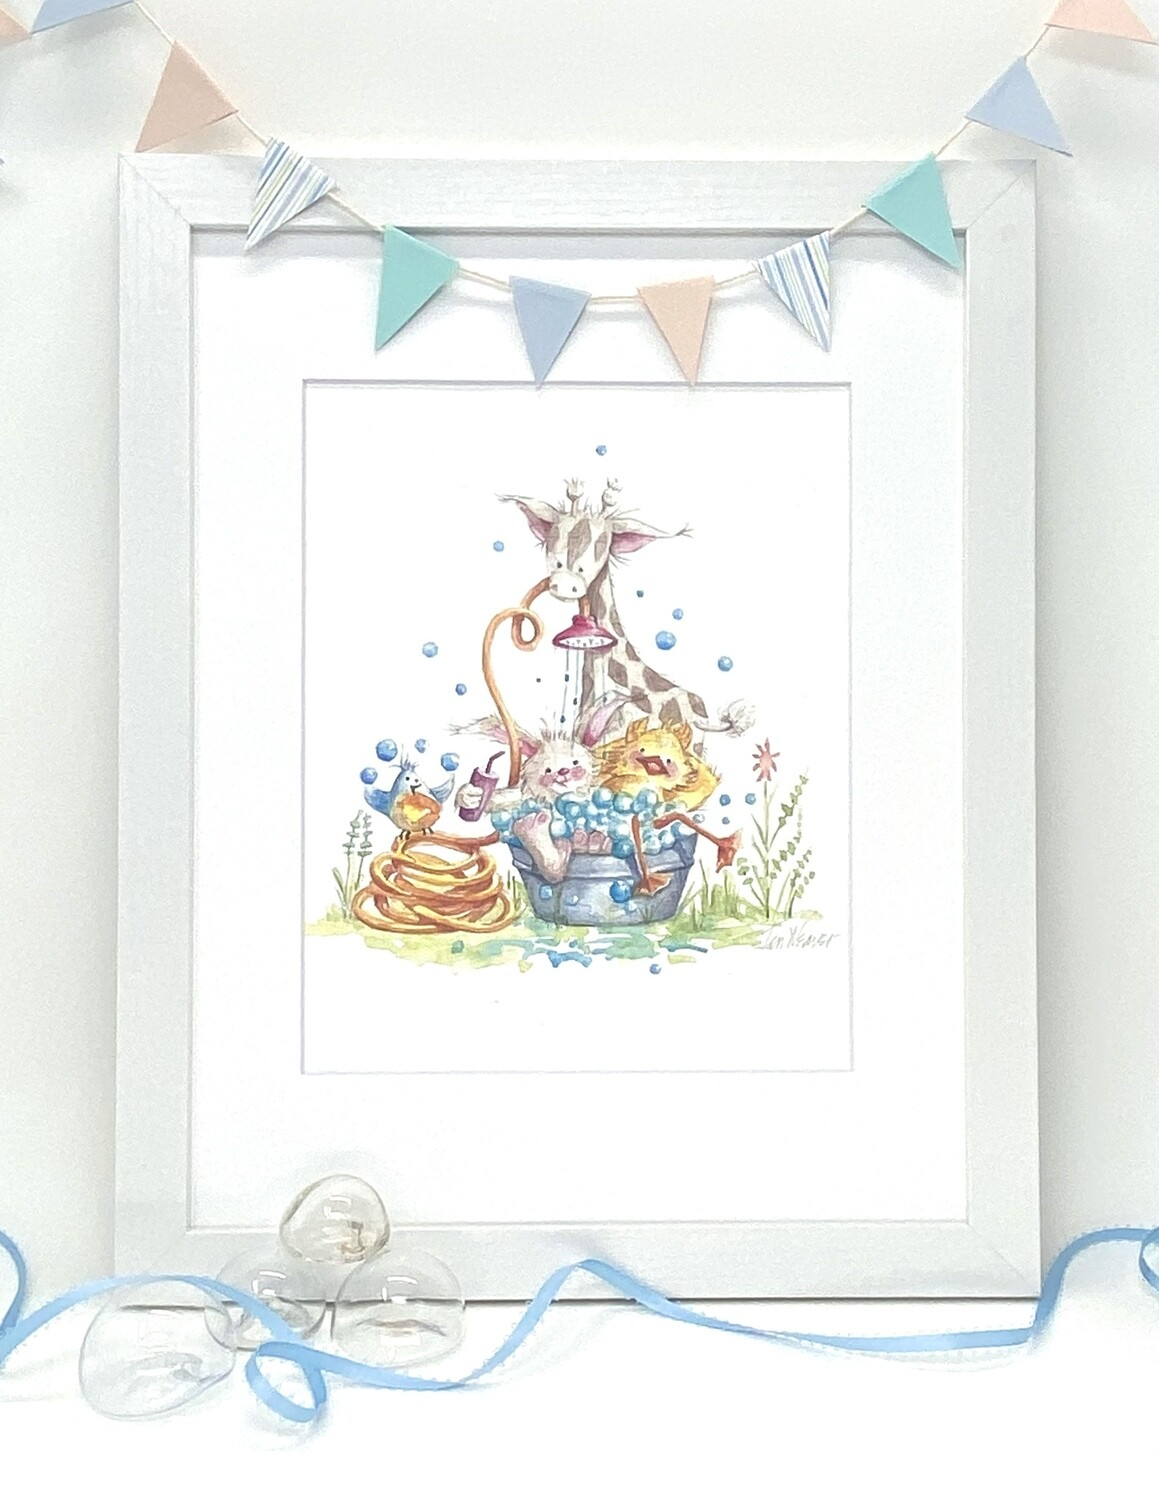 Nursery and Children's Art Print - Framed and Signed - BACK YARD BATH BUDDIES